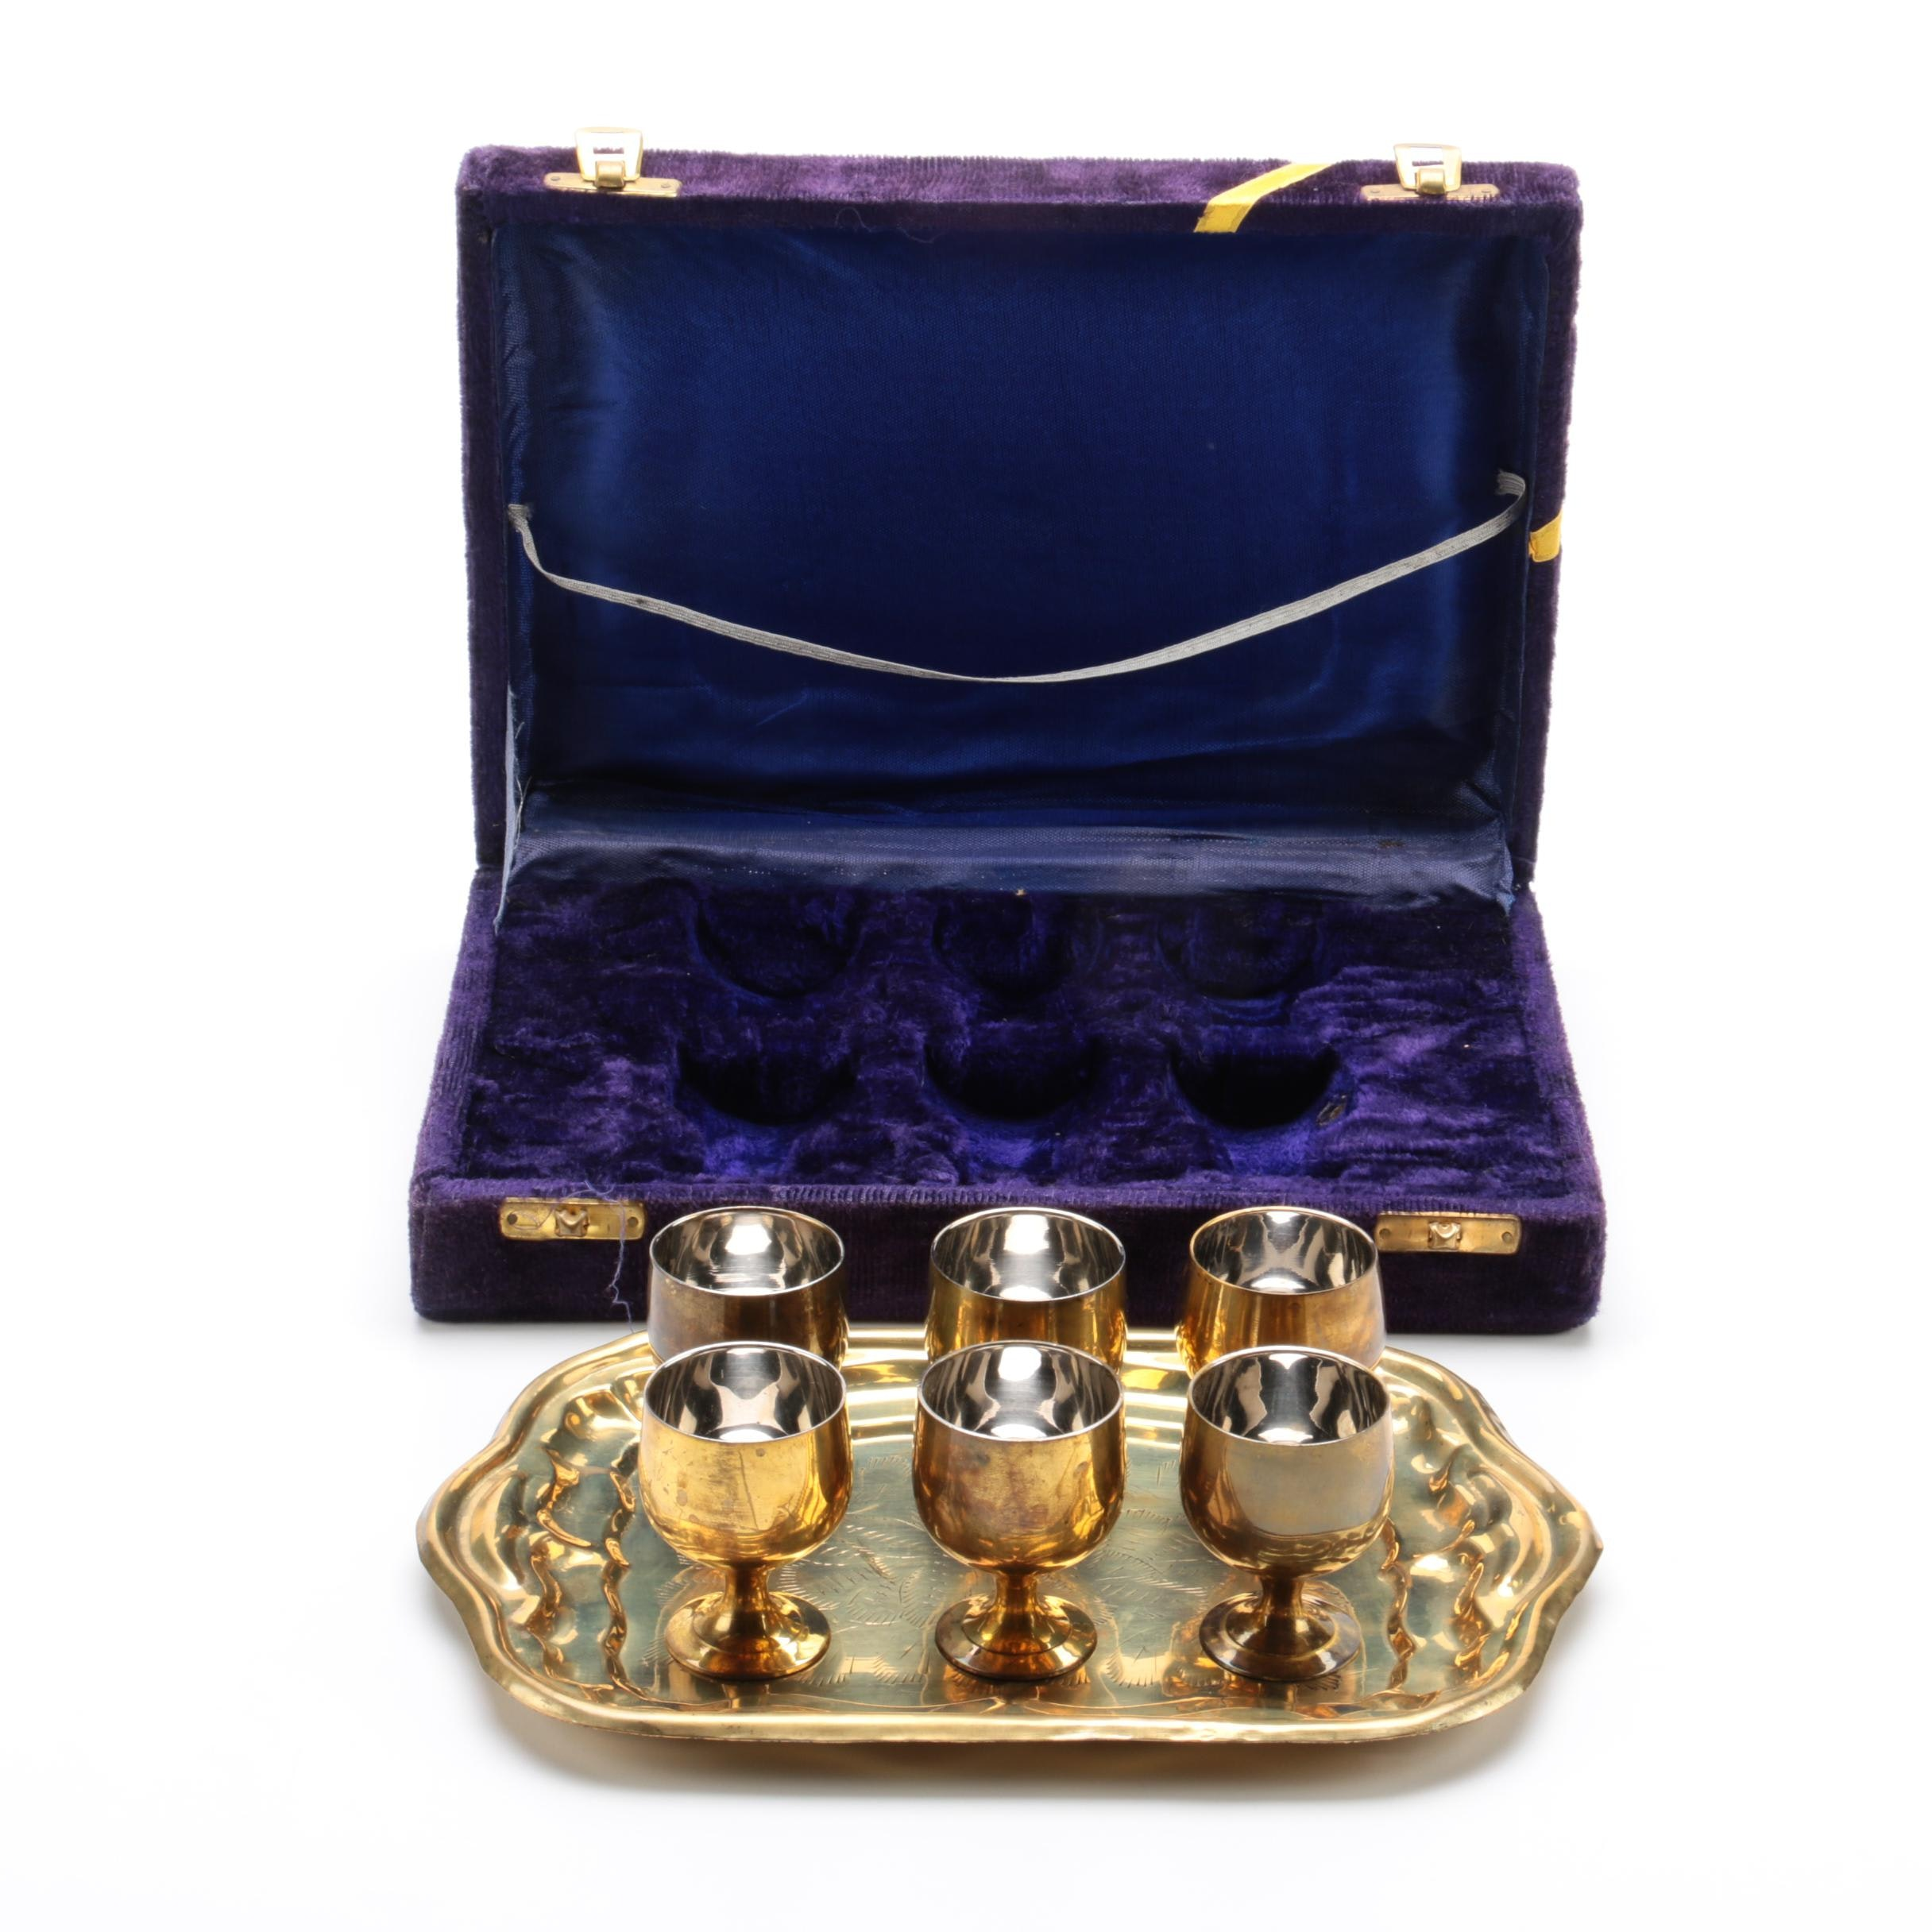 Brass Glasses and Service Tray in Presentation Case